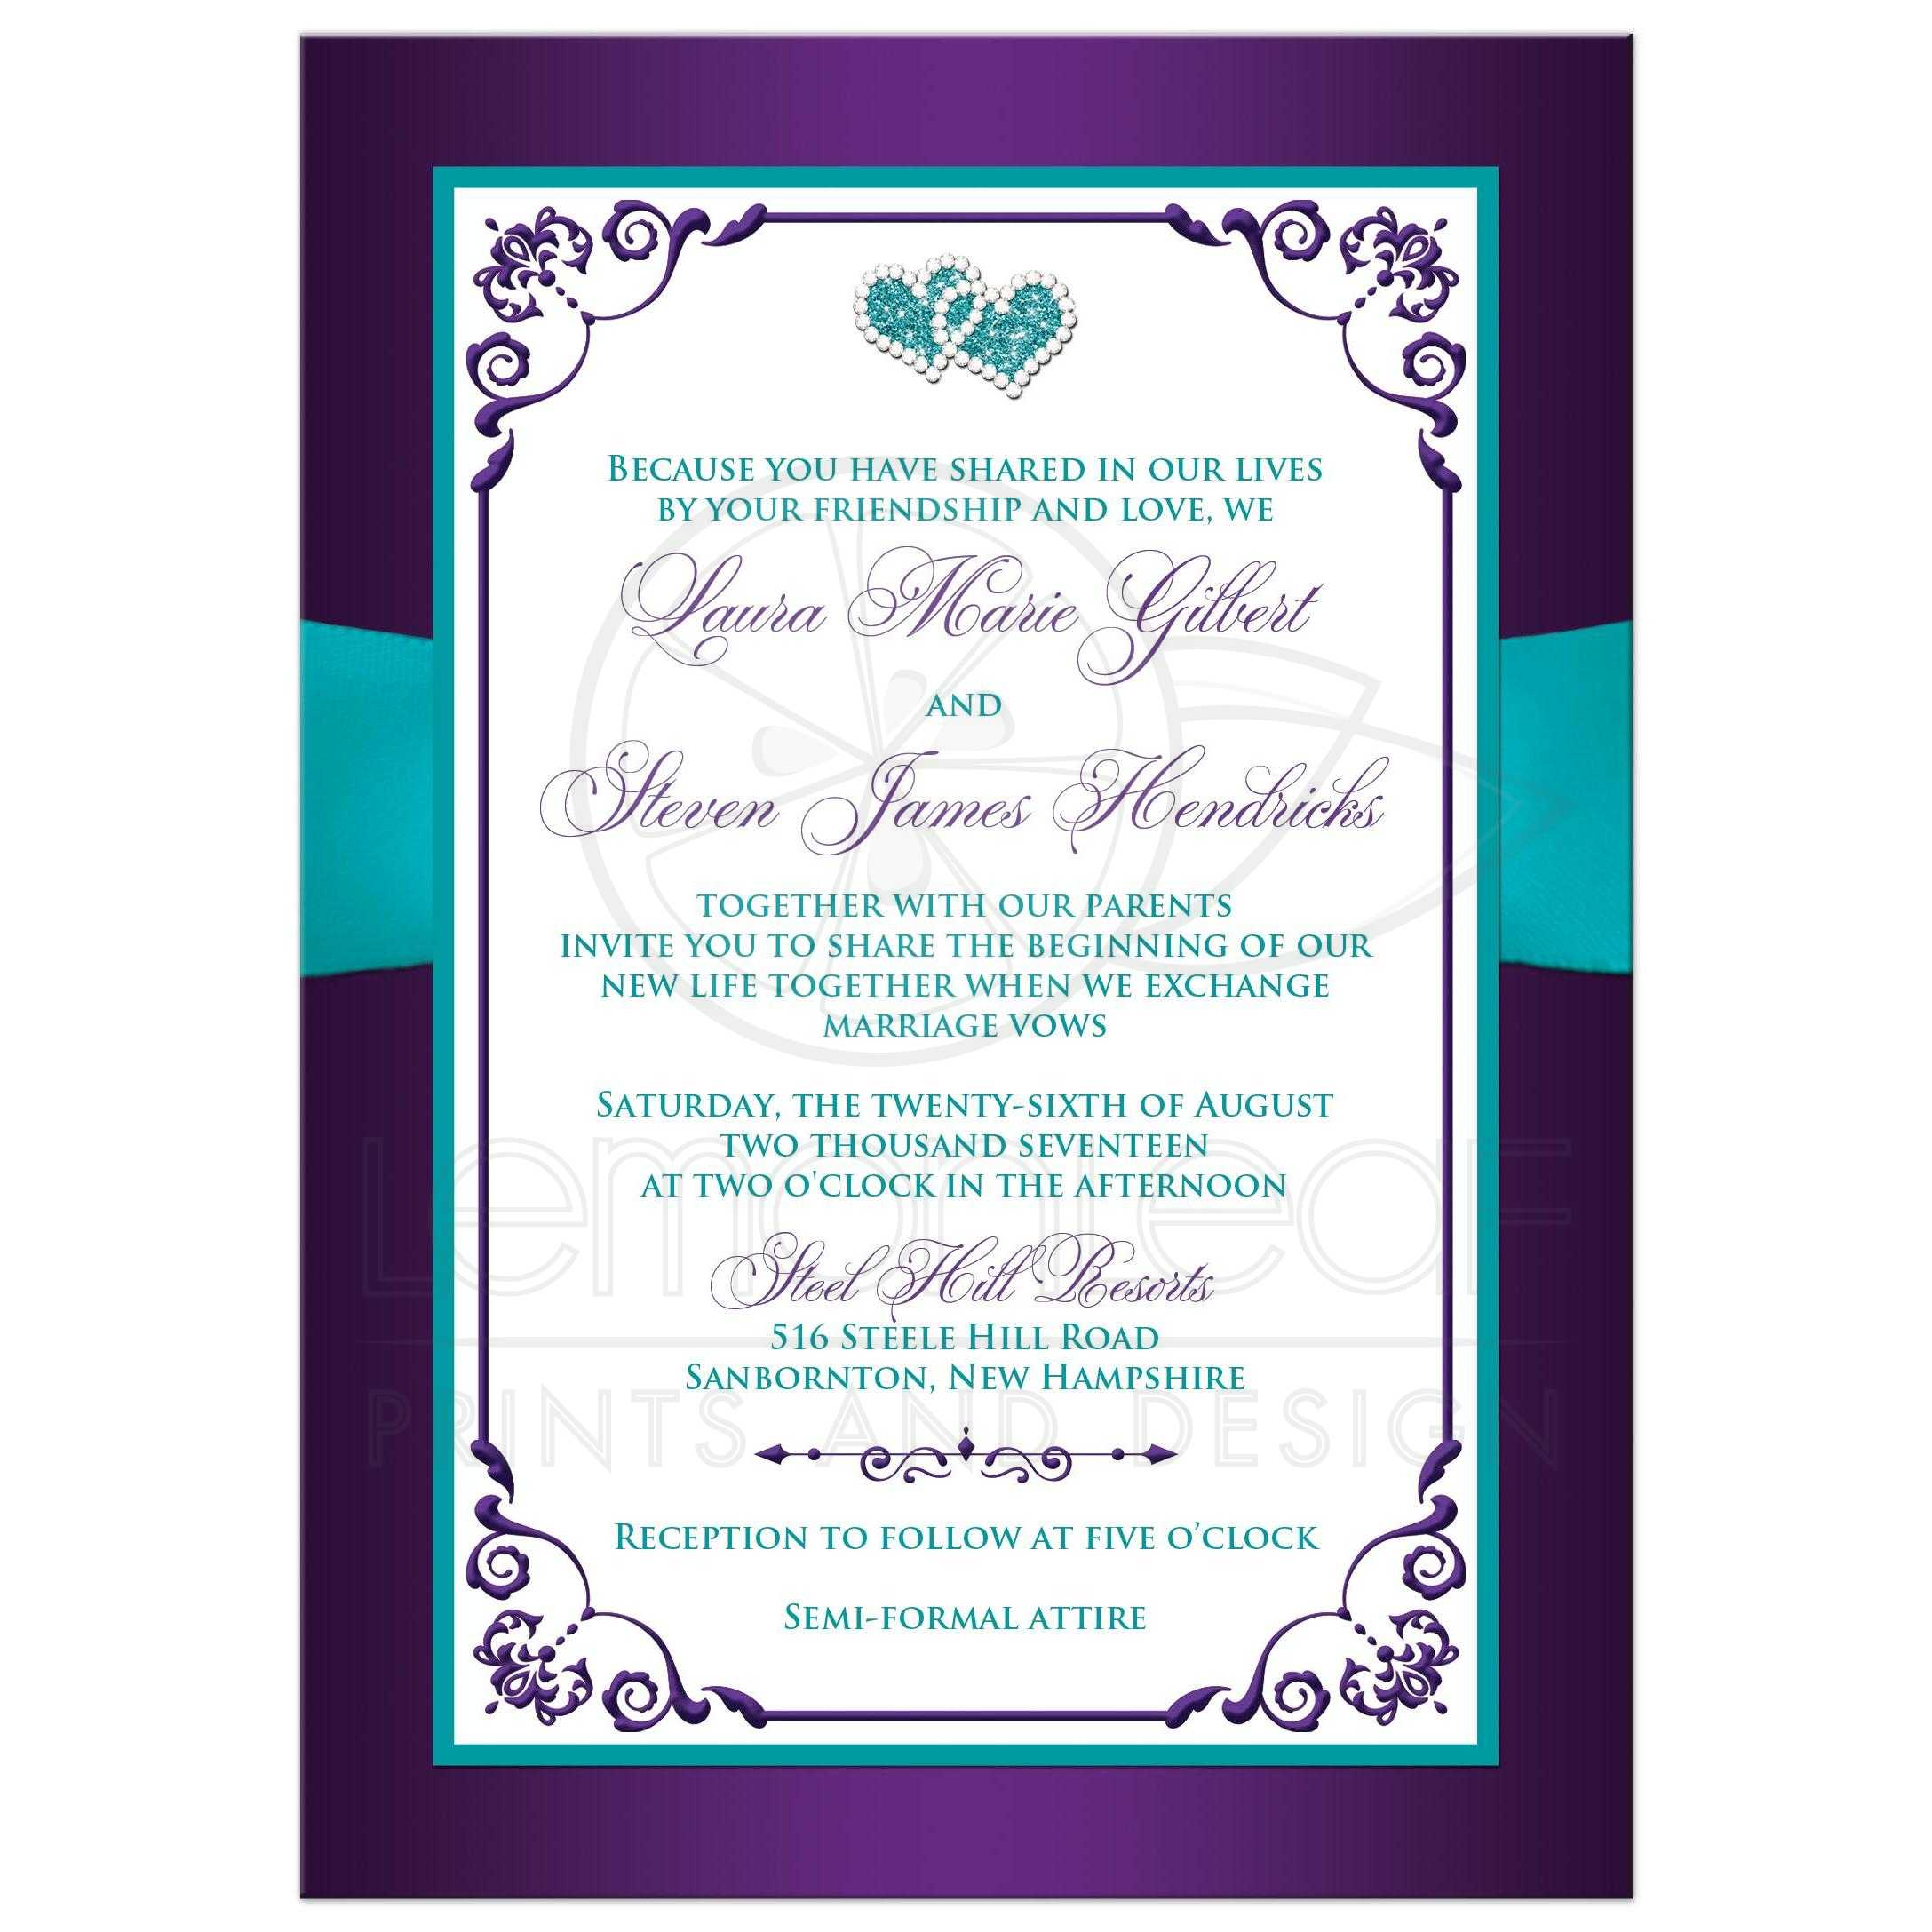 Royal Blue Invitations is good invitations example